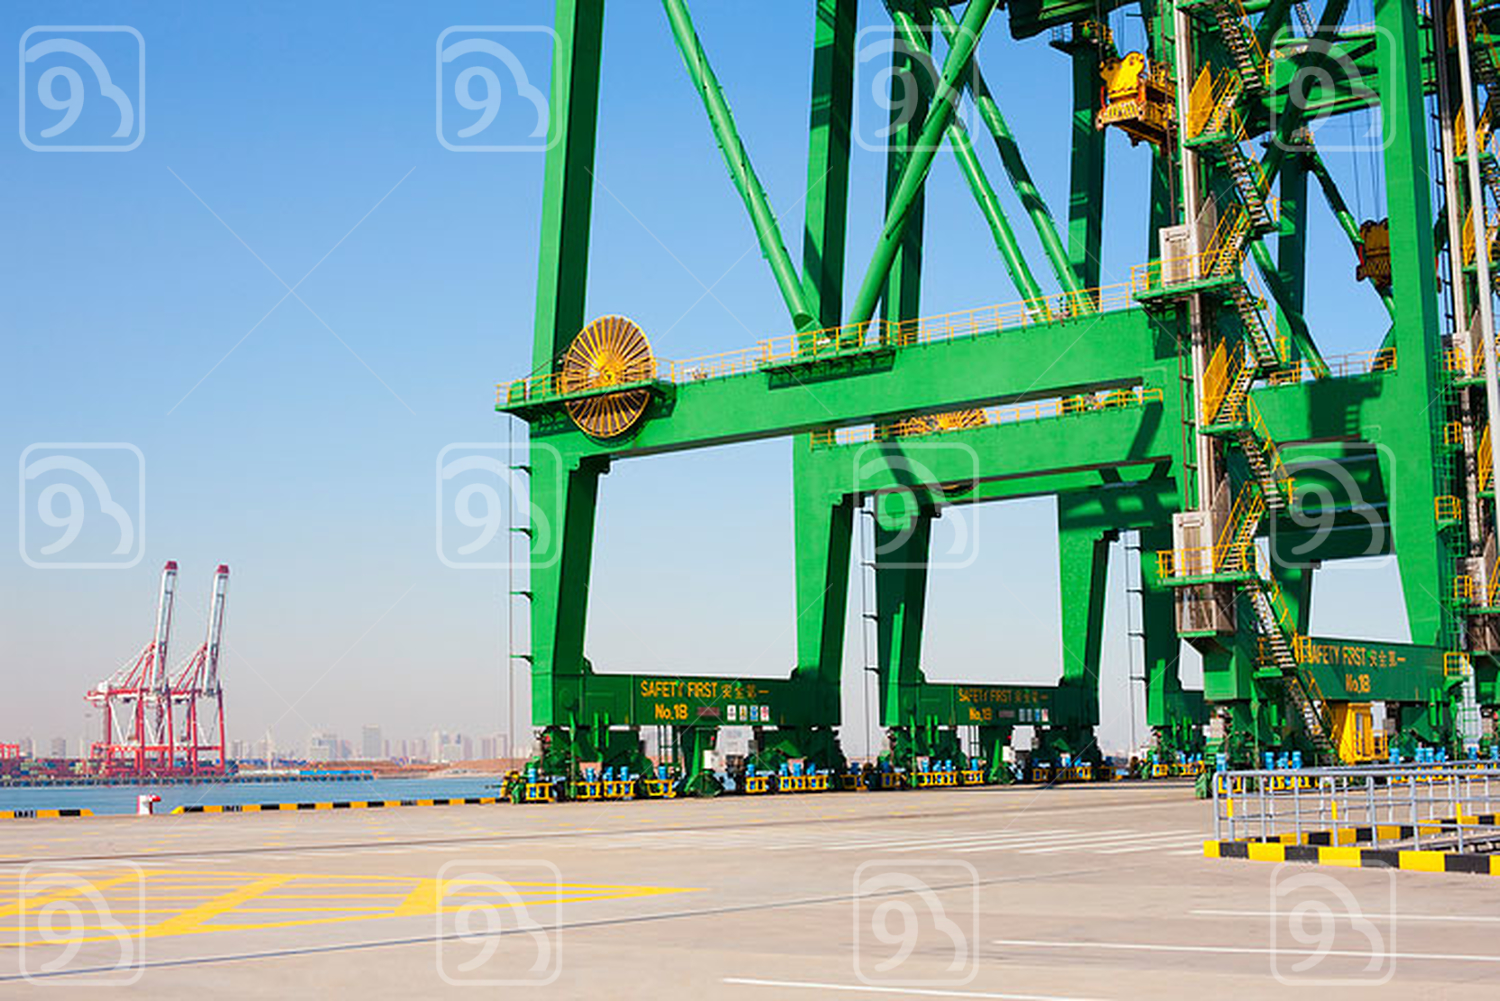 Cranes in shipping dock